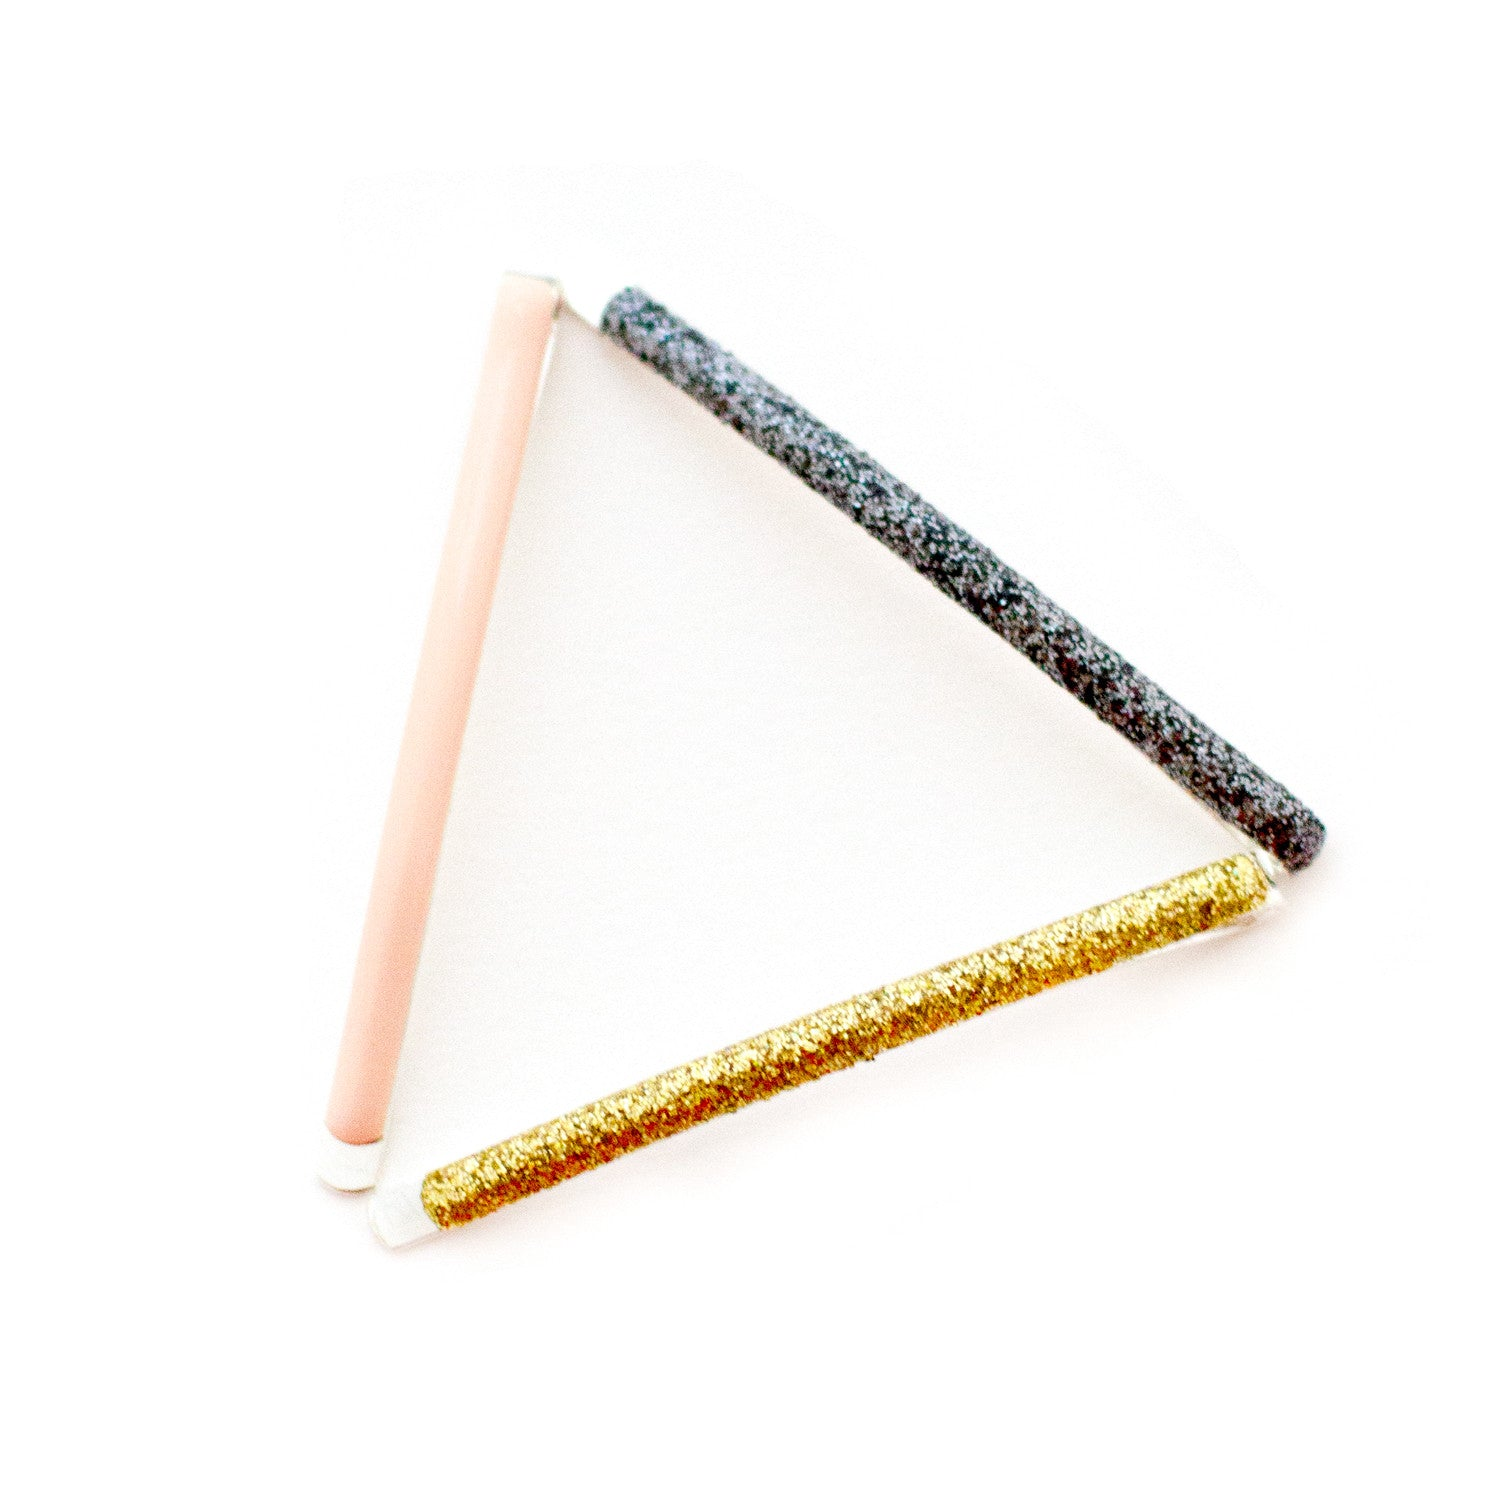 mane message glitter and enamel bobby pins. featured in popsugar must have box december 2016